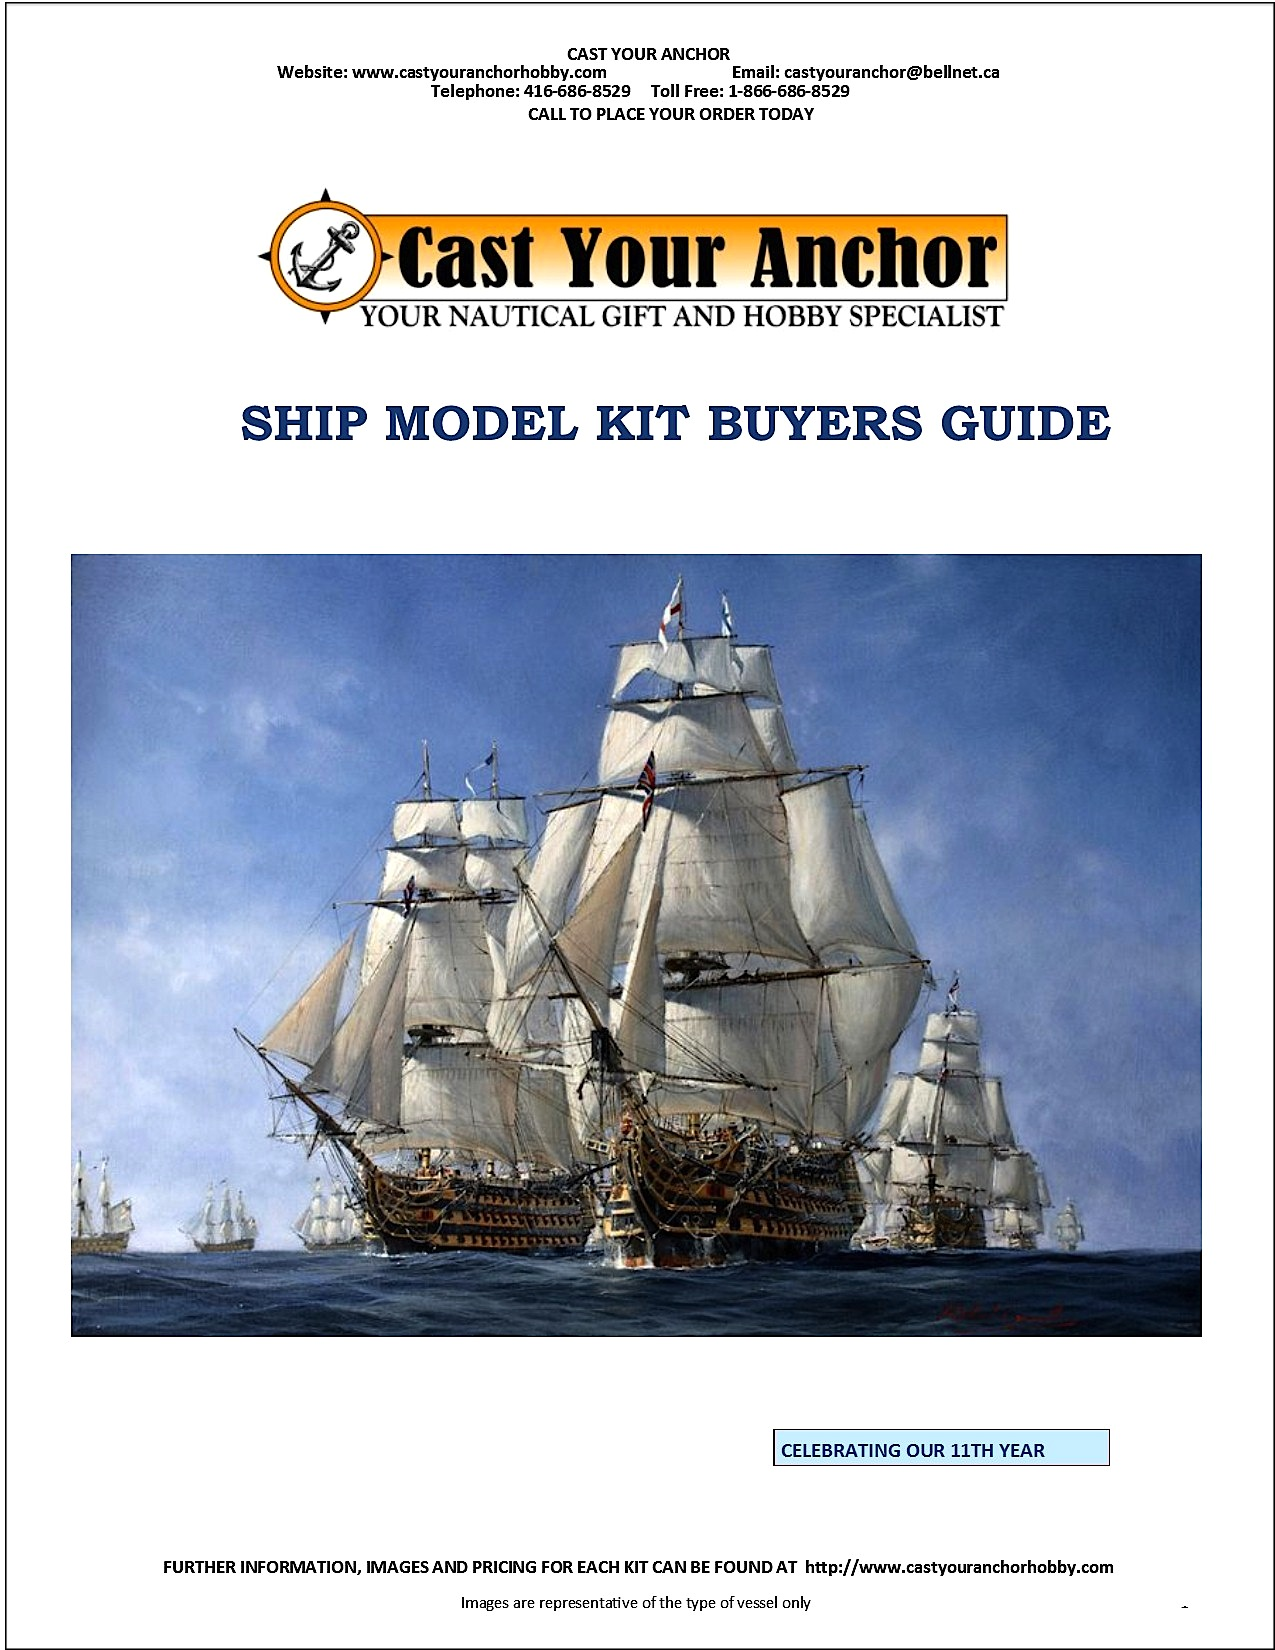 52013 - Ship Model Kit Buyer's Guide